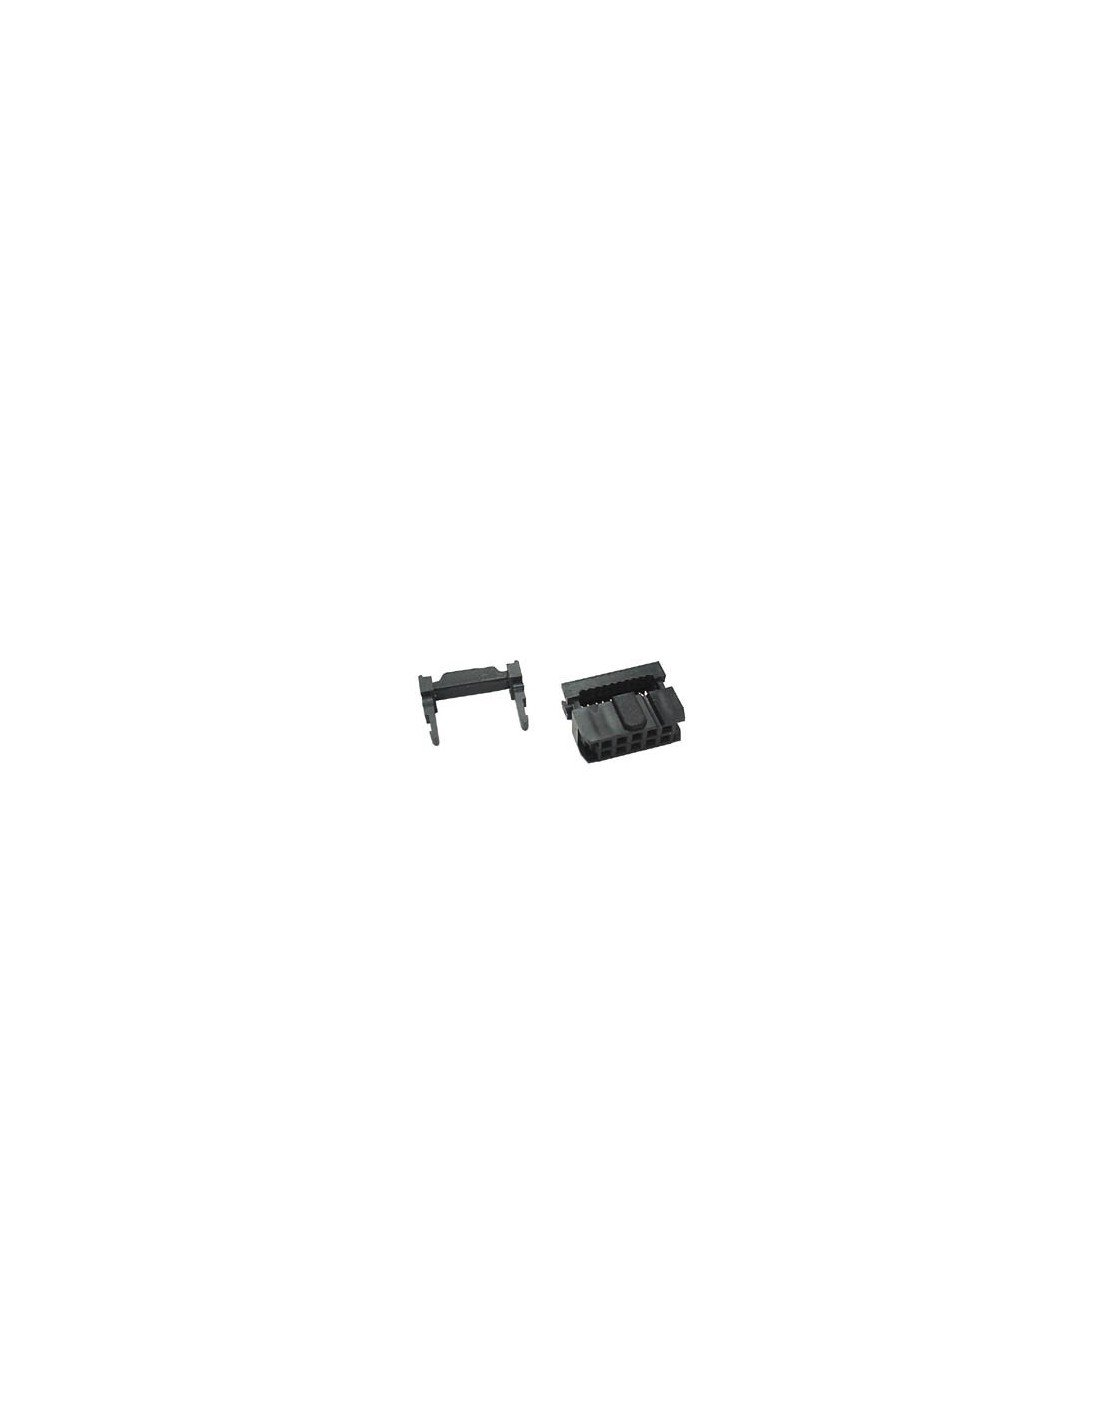 Velleman 141012  IDC Connector, 16  PIN 16 PIN